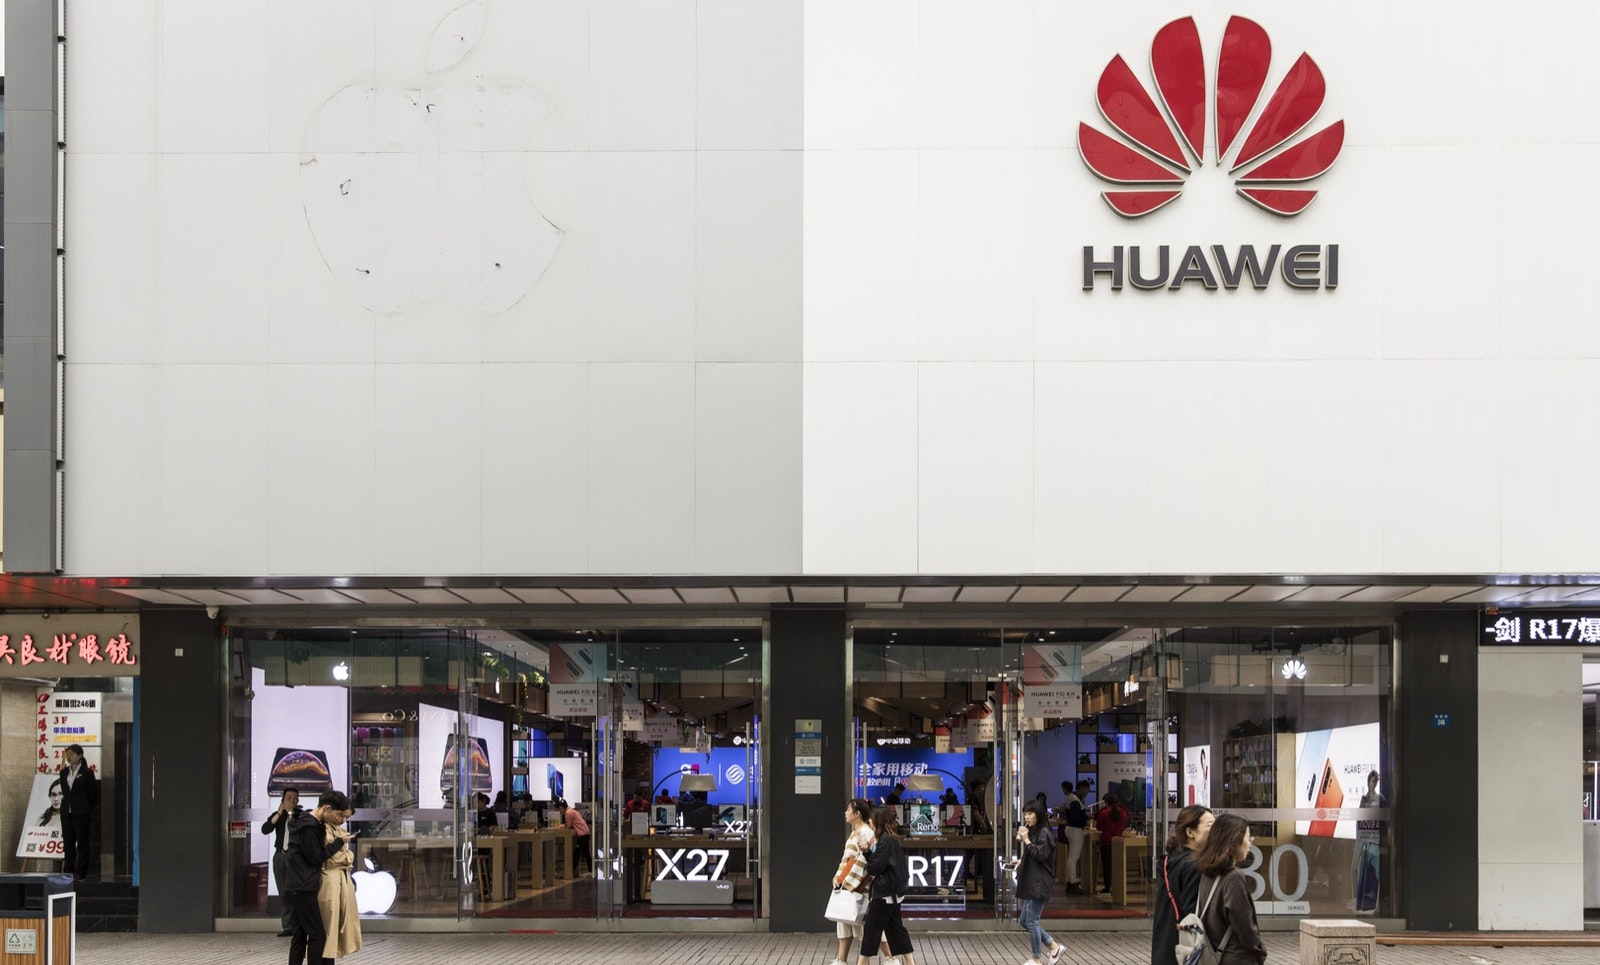 A Huawei store. Photo by Bloomberg.